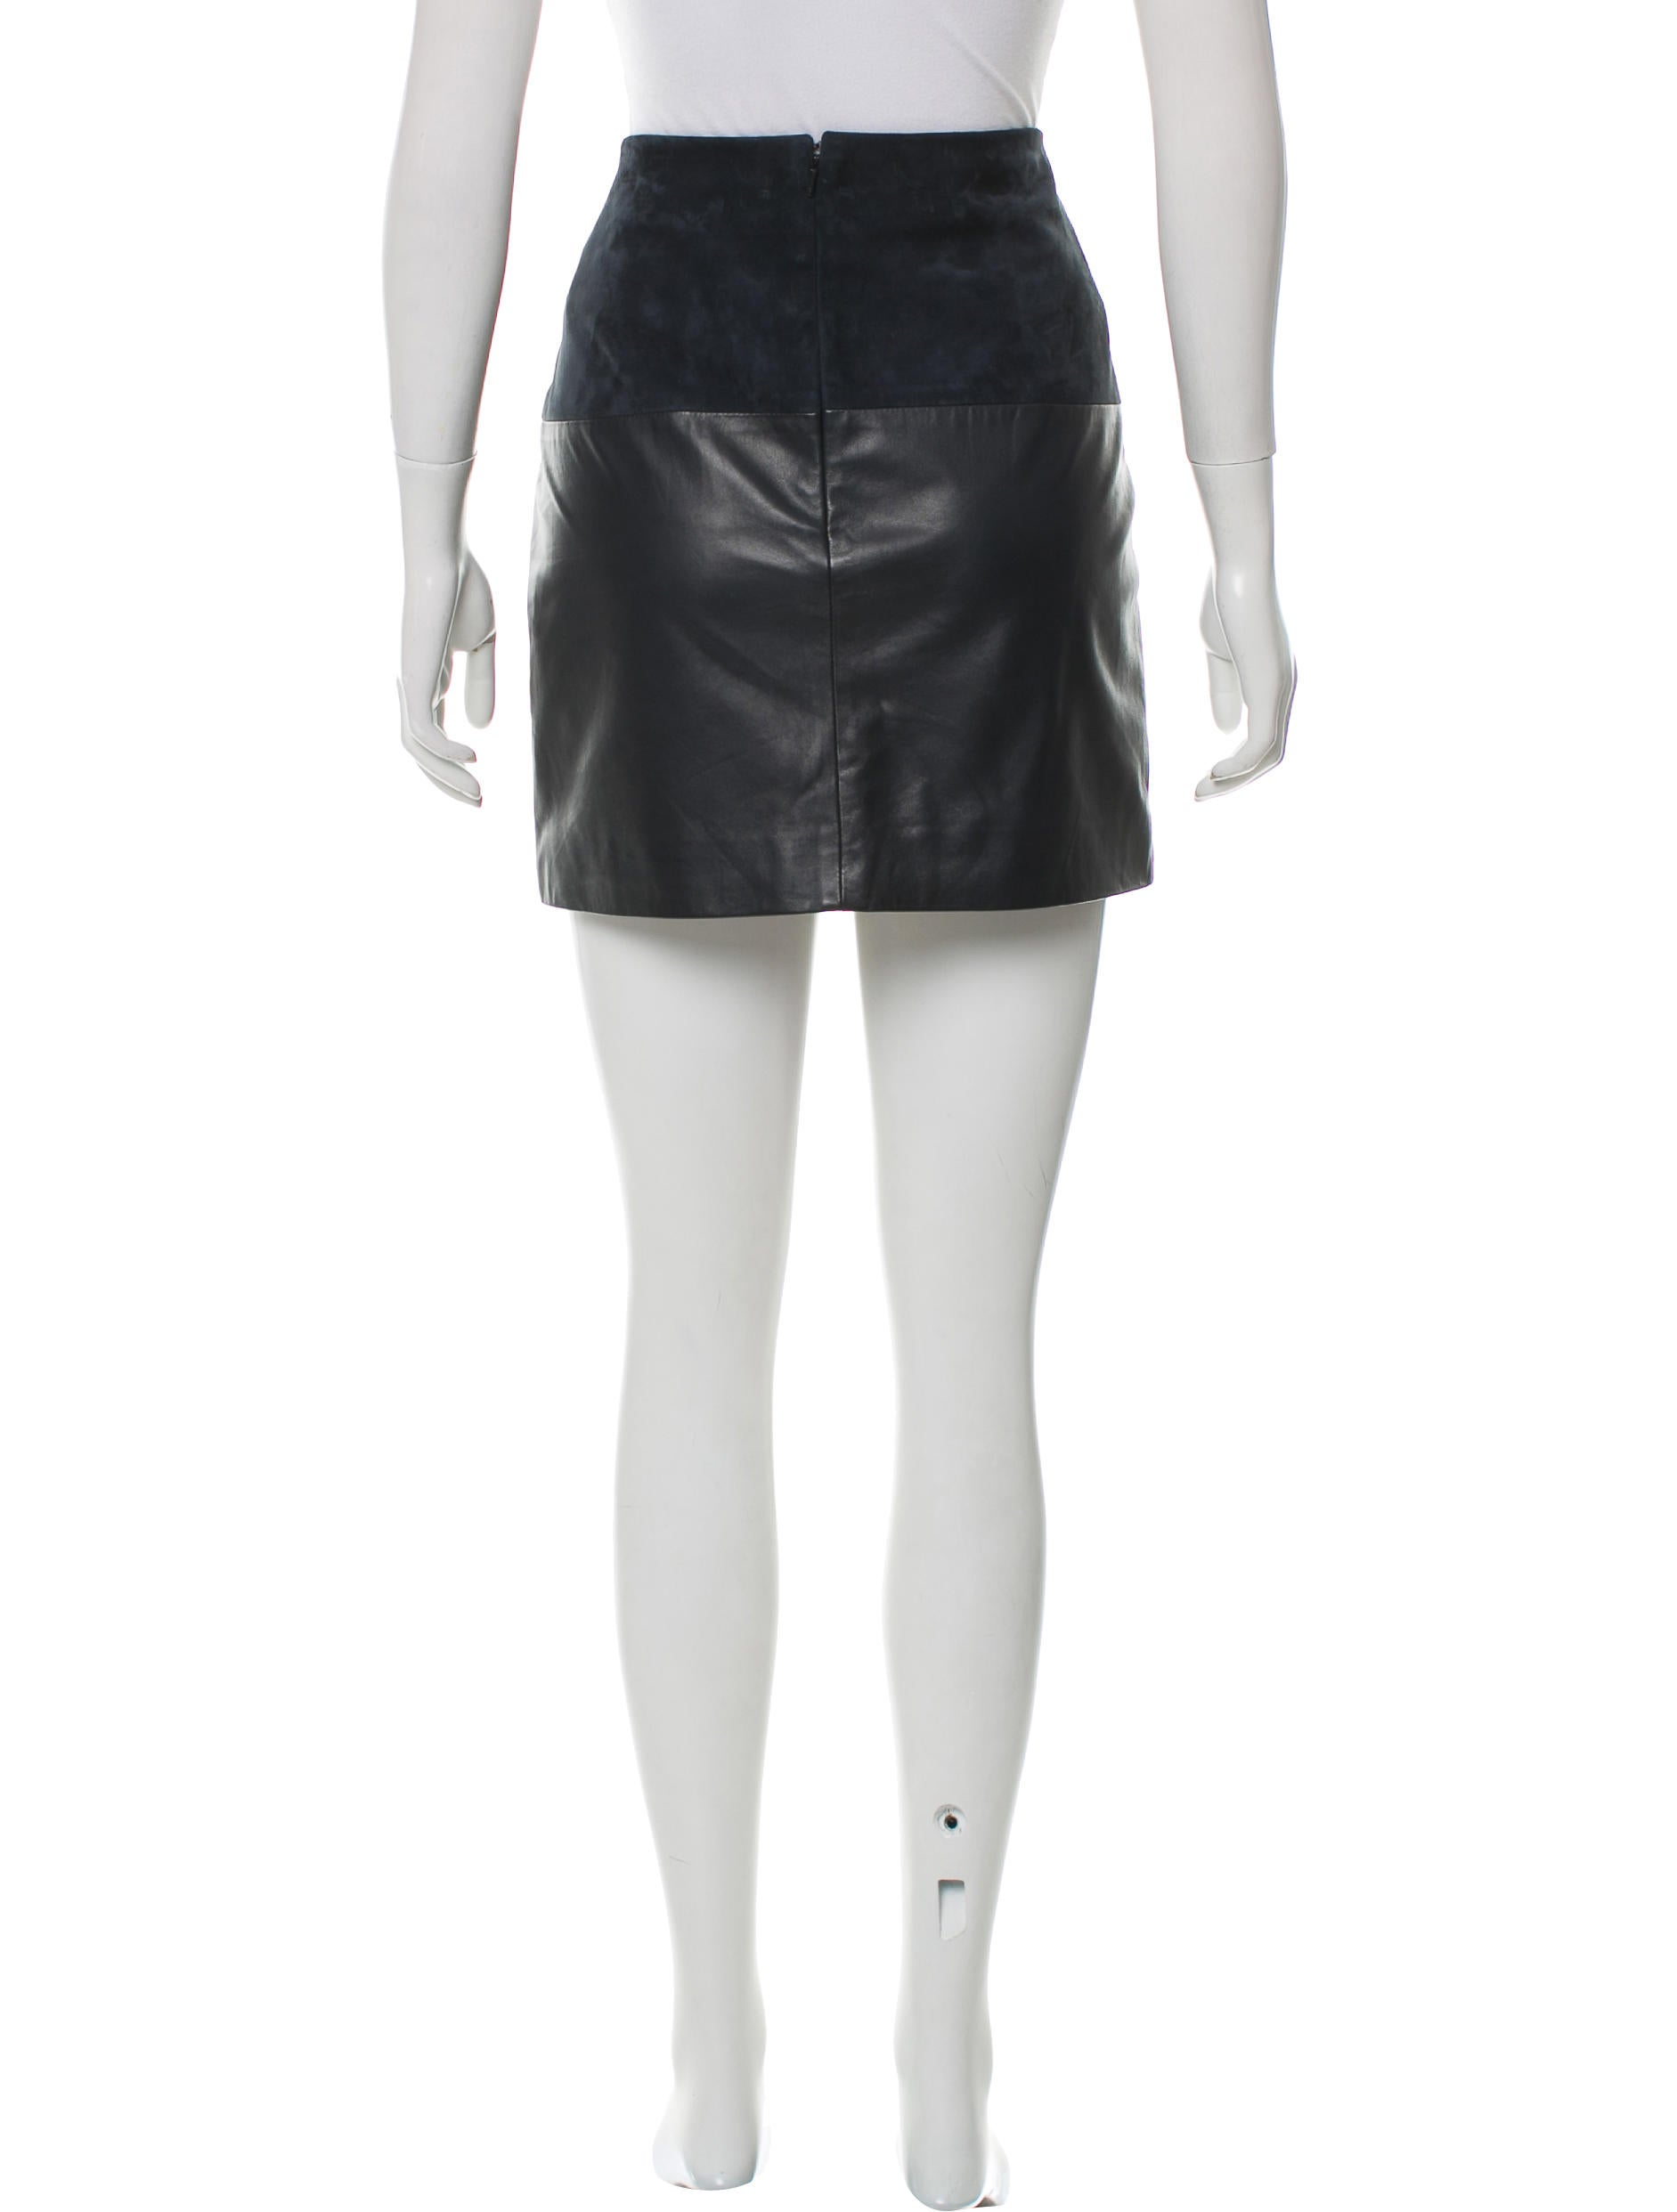 Find great deals on eBay for suede leather skirt. Shop with confidence.